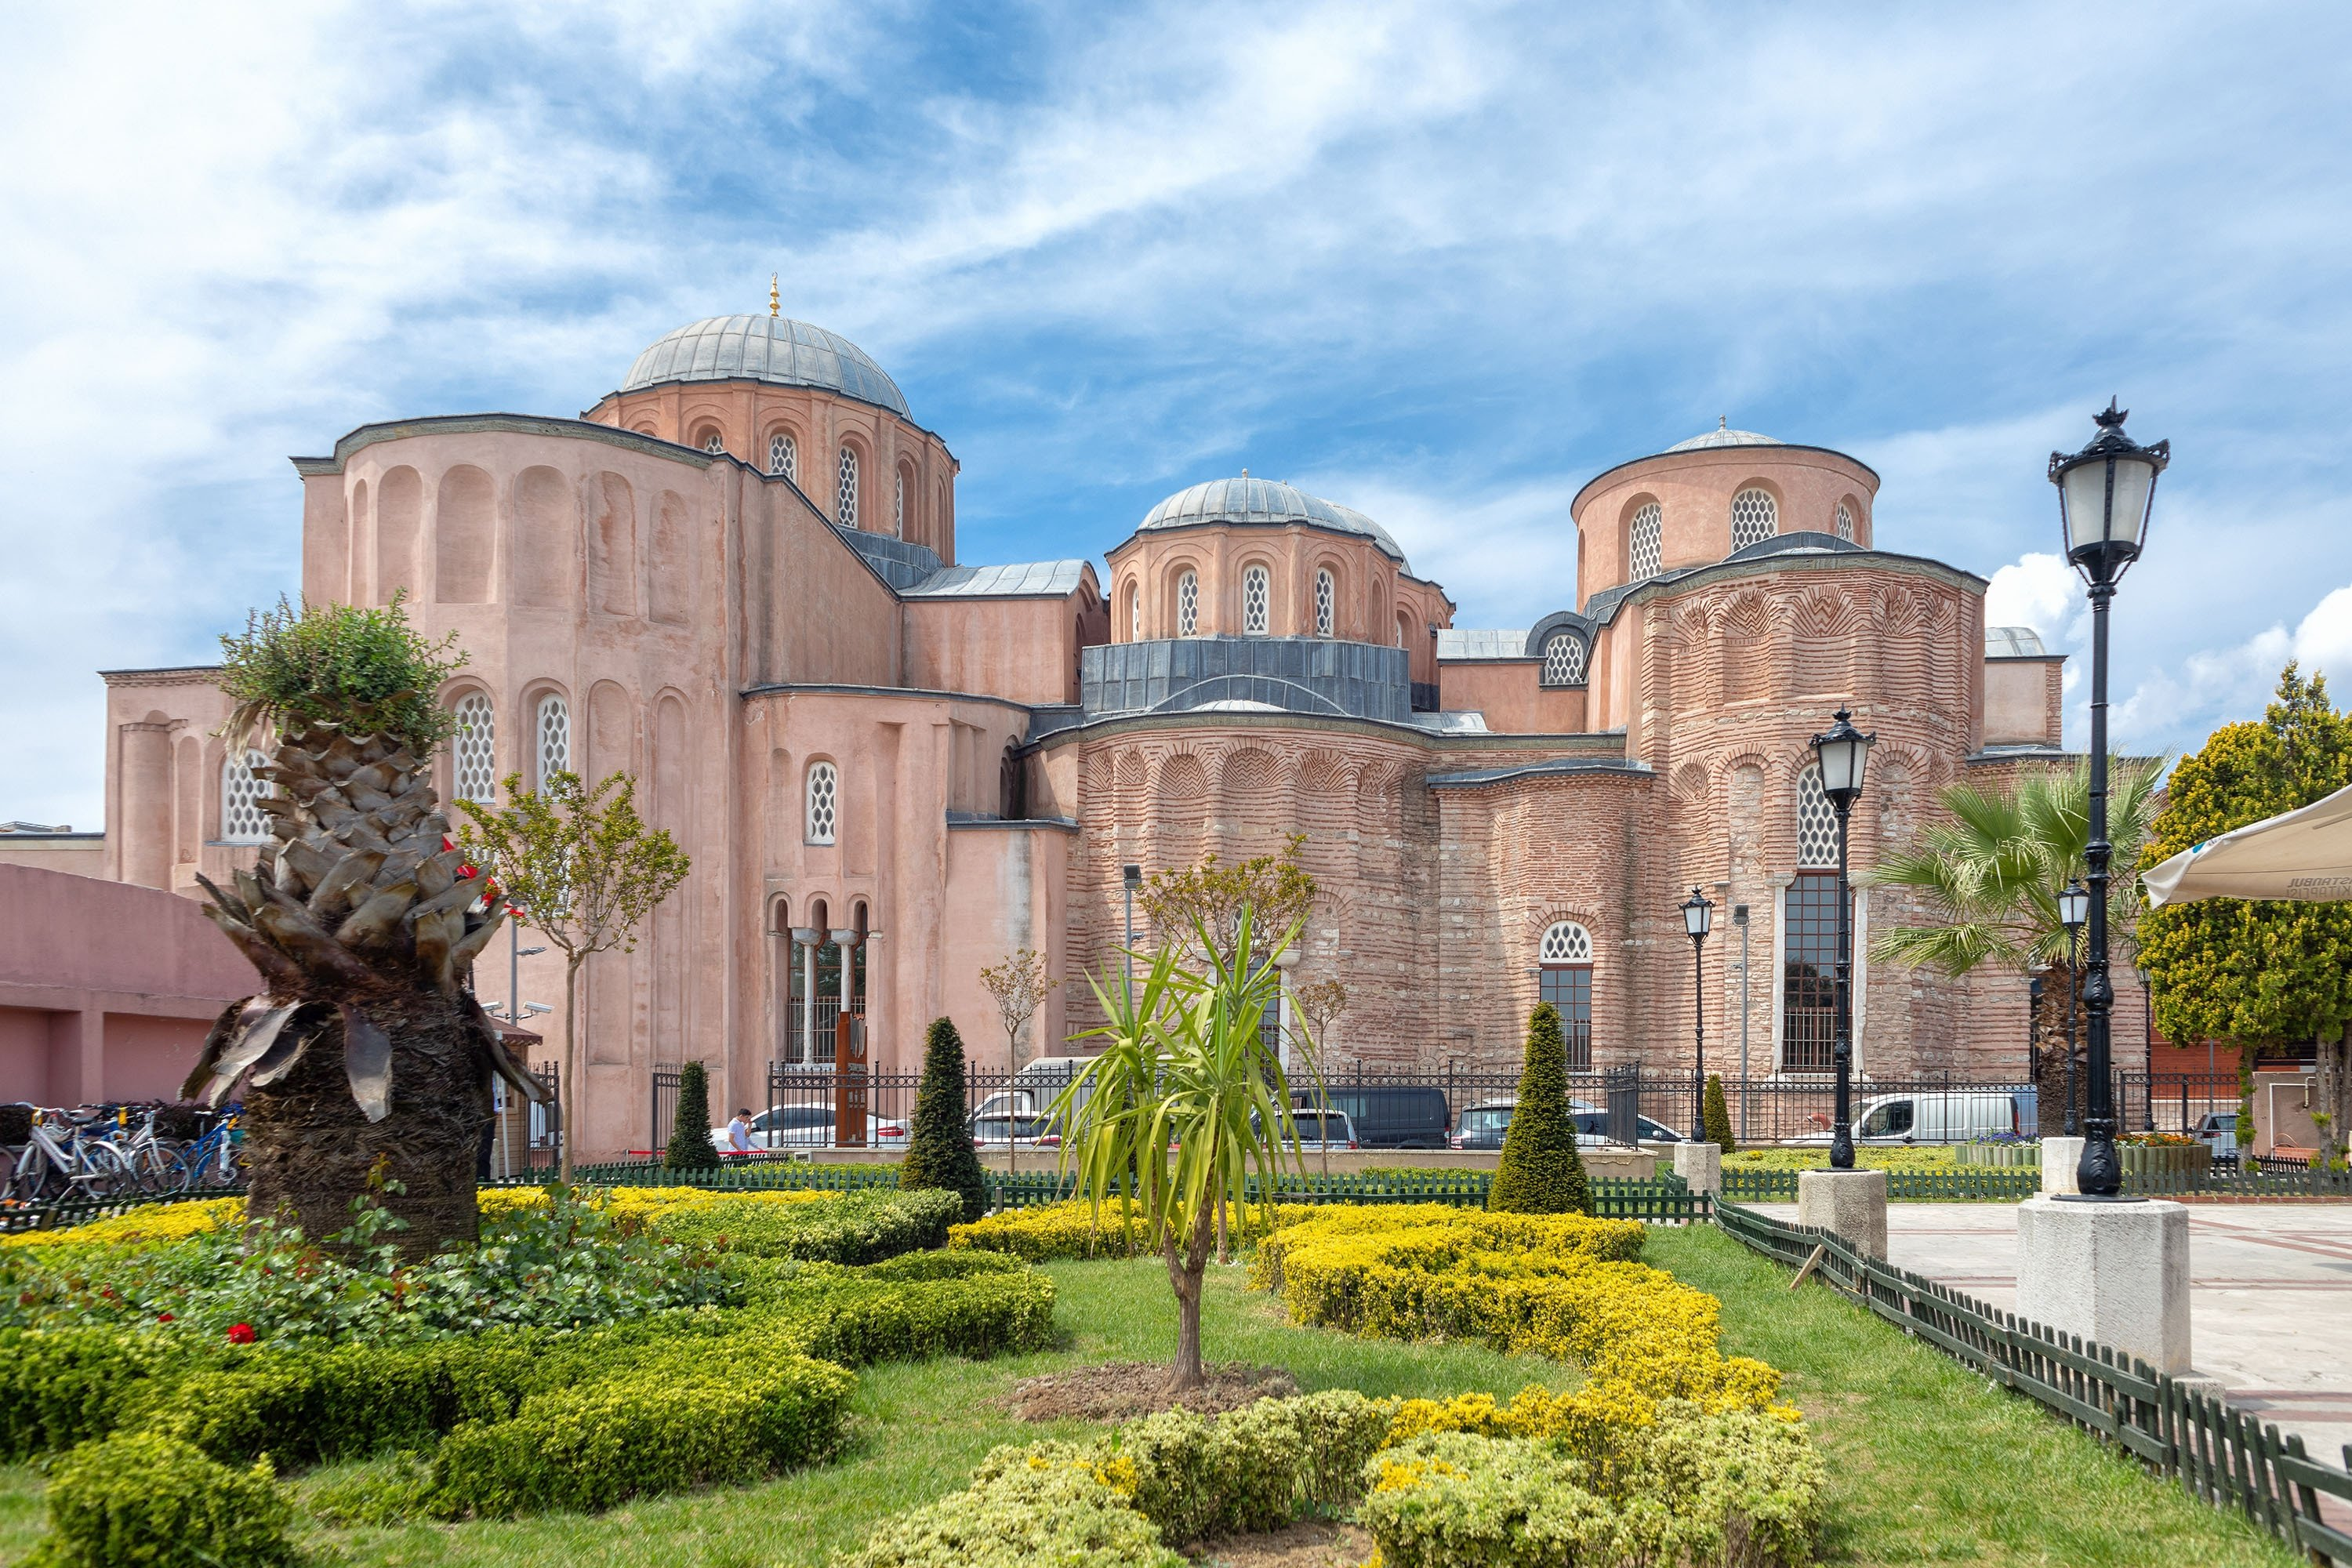 Zeyrek Mosque or Monastery of the Pantocrator, in the Fatih district, Istanbul, Turkey, May 1, 2019. (Shuttershock)